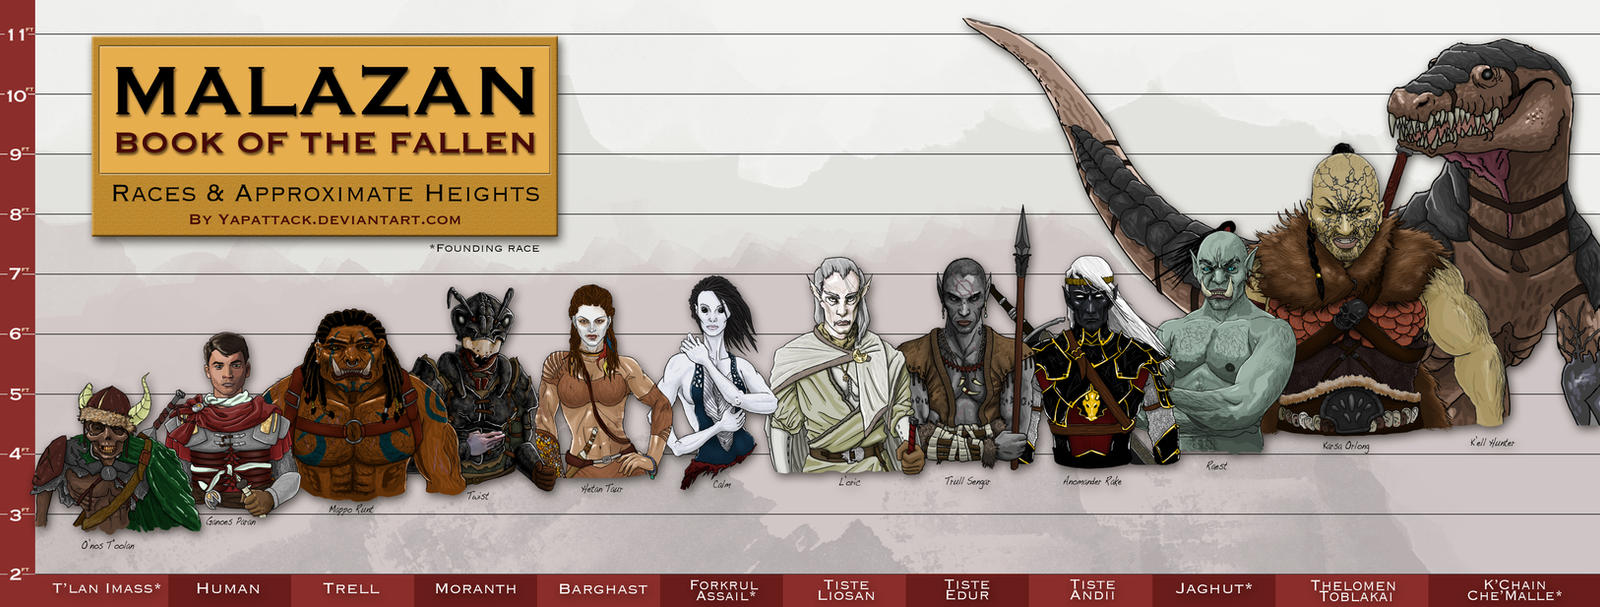 Malazan Races and Approximate Heights by YapAttack on DeviantArt